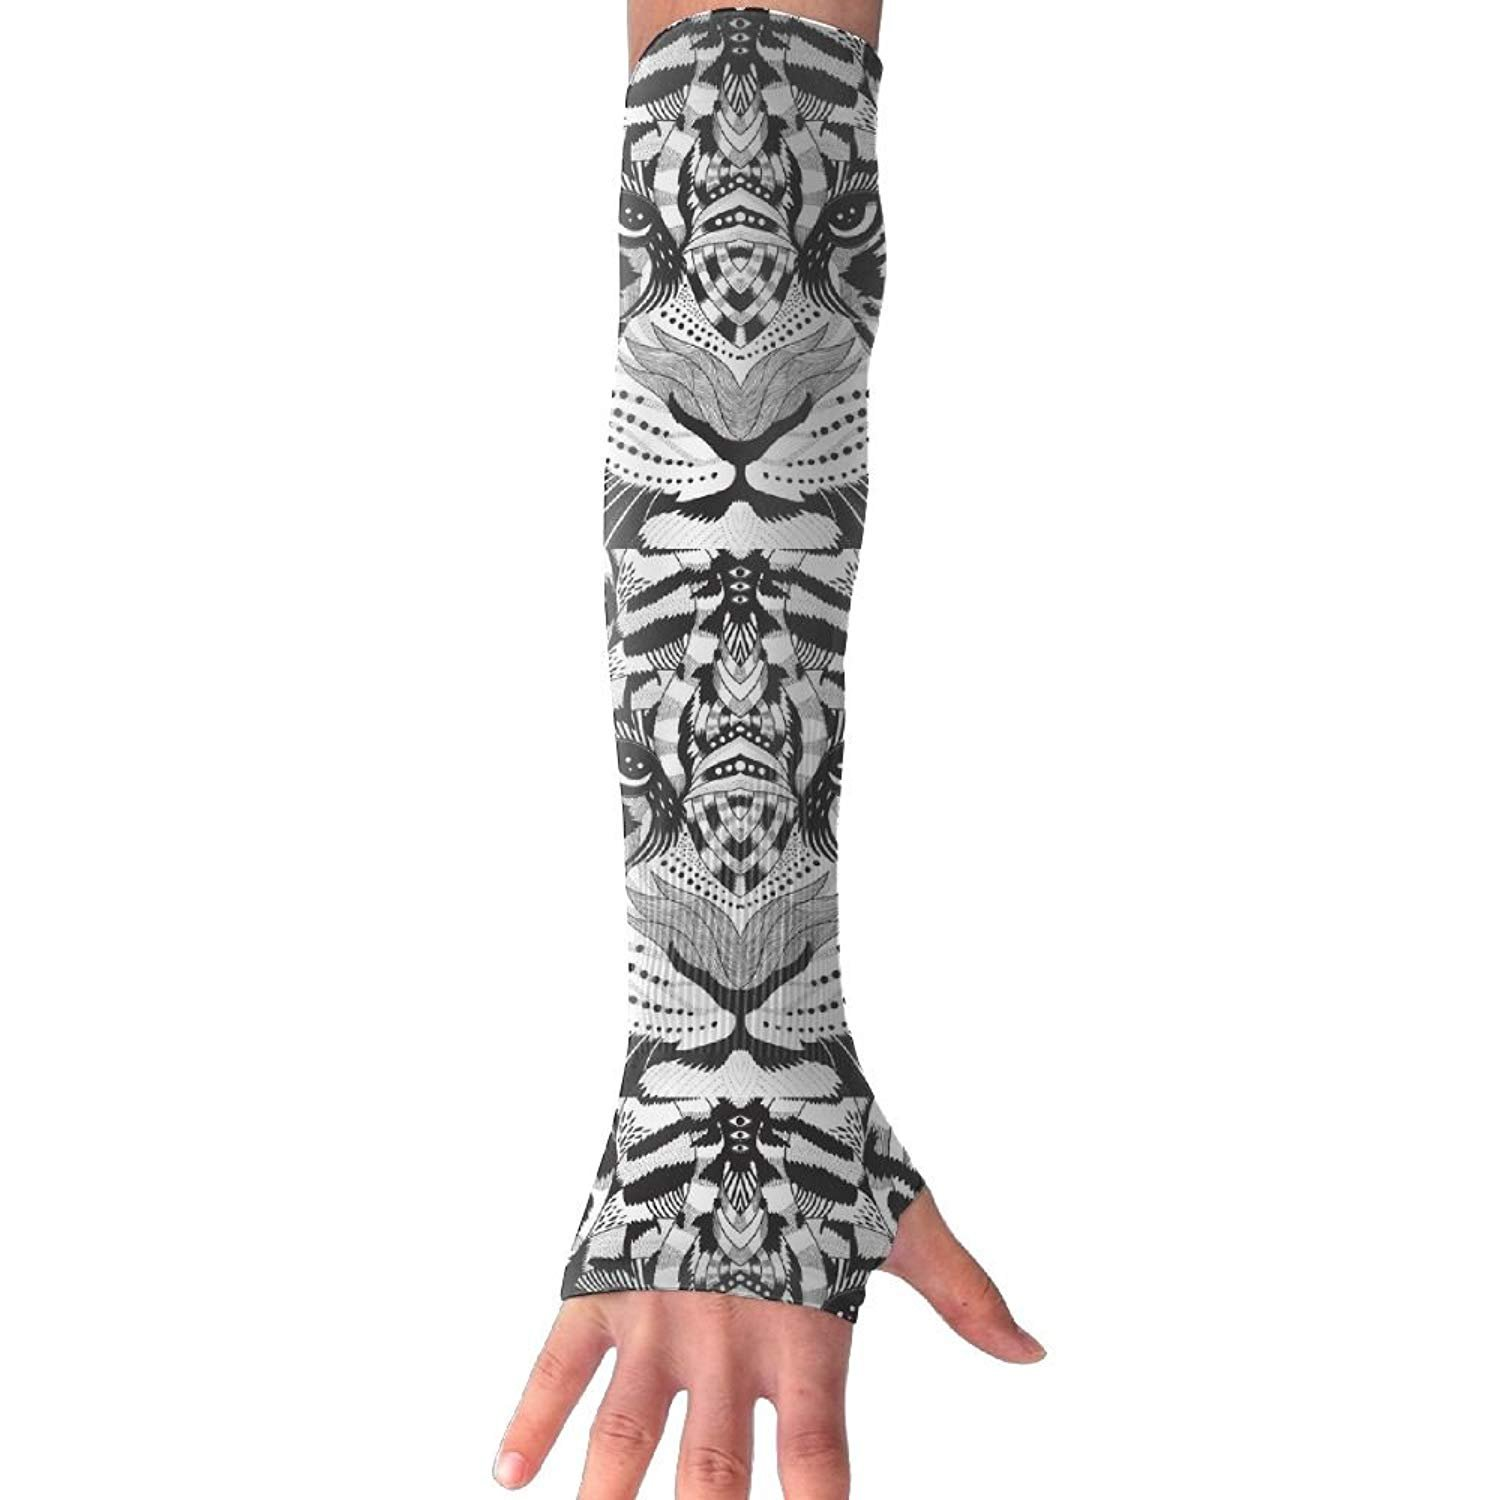 Unisex Simple Lines Black Tiger Head Sunscreen Outdoor Travel Arm Warmer Long Sleeves Glove